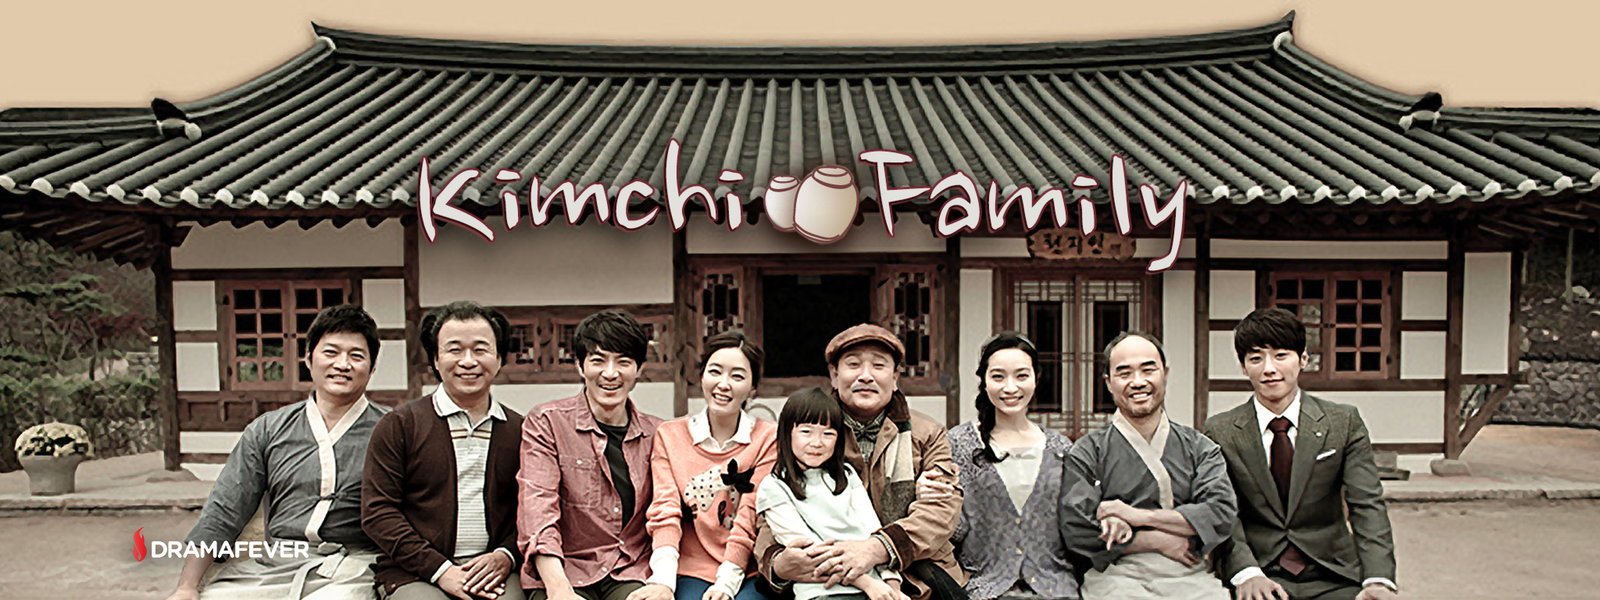 Image result for Kimchi Family